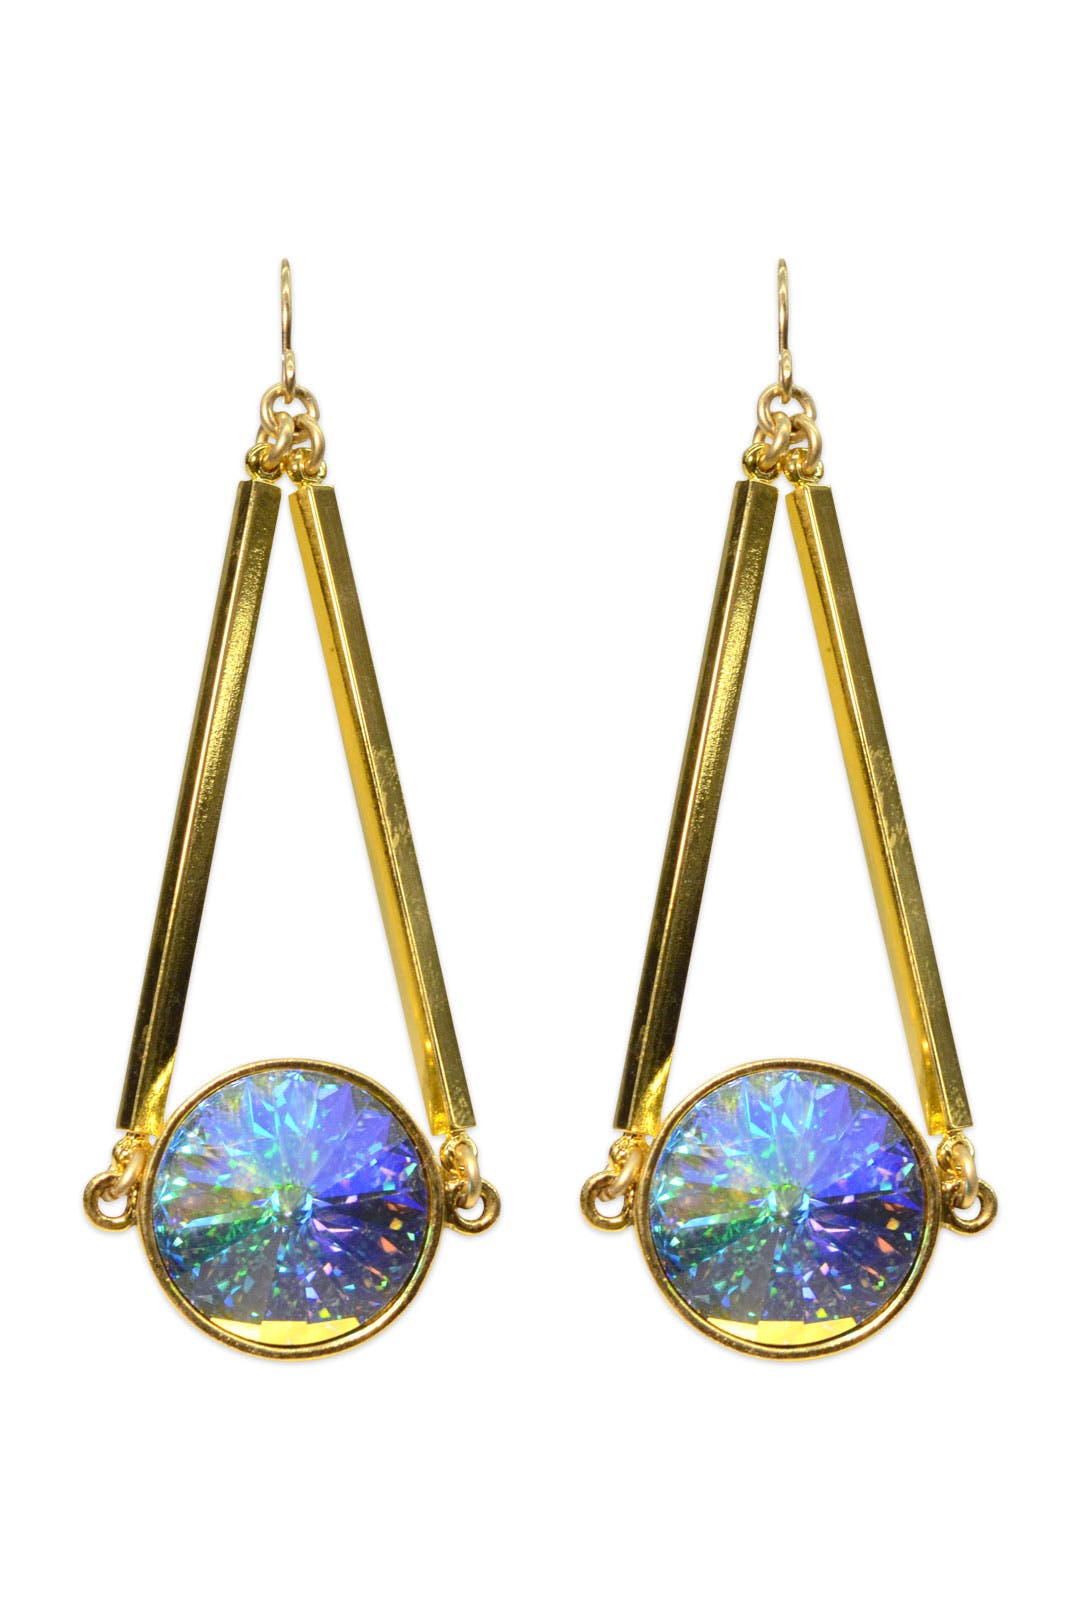 Tangled Up In Gold Earrings by Gemma Redux